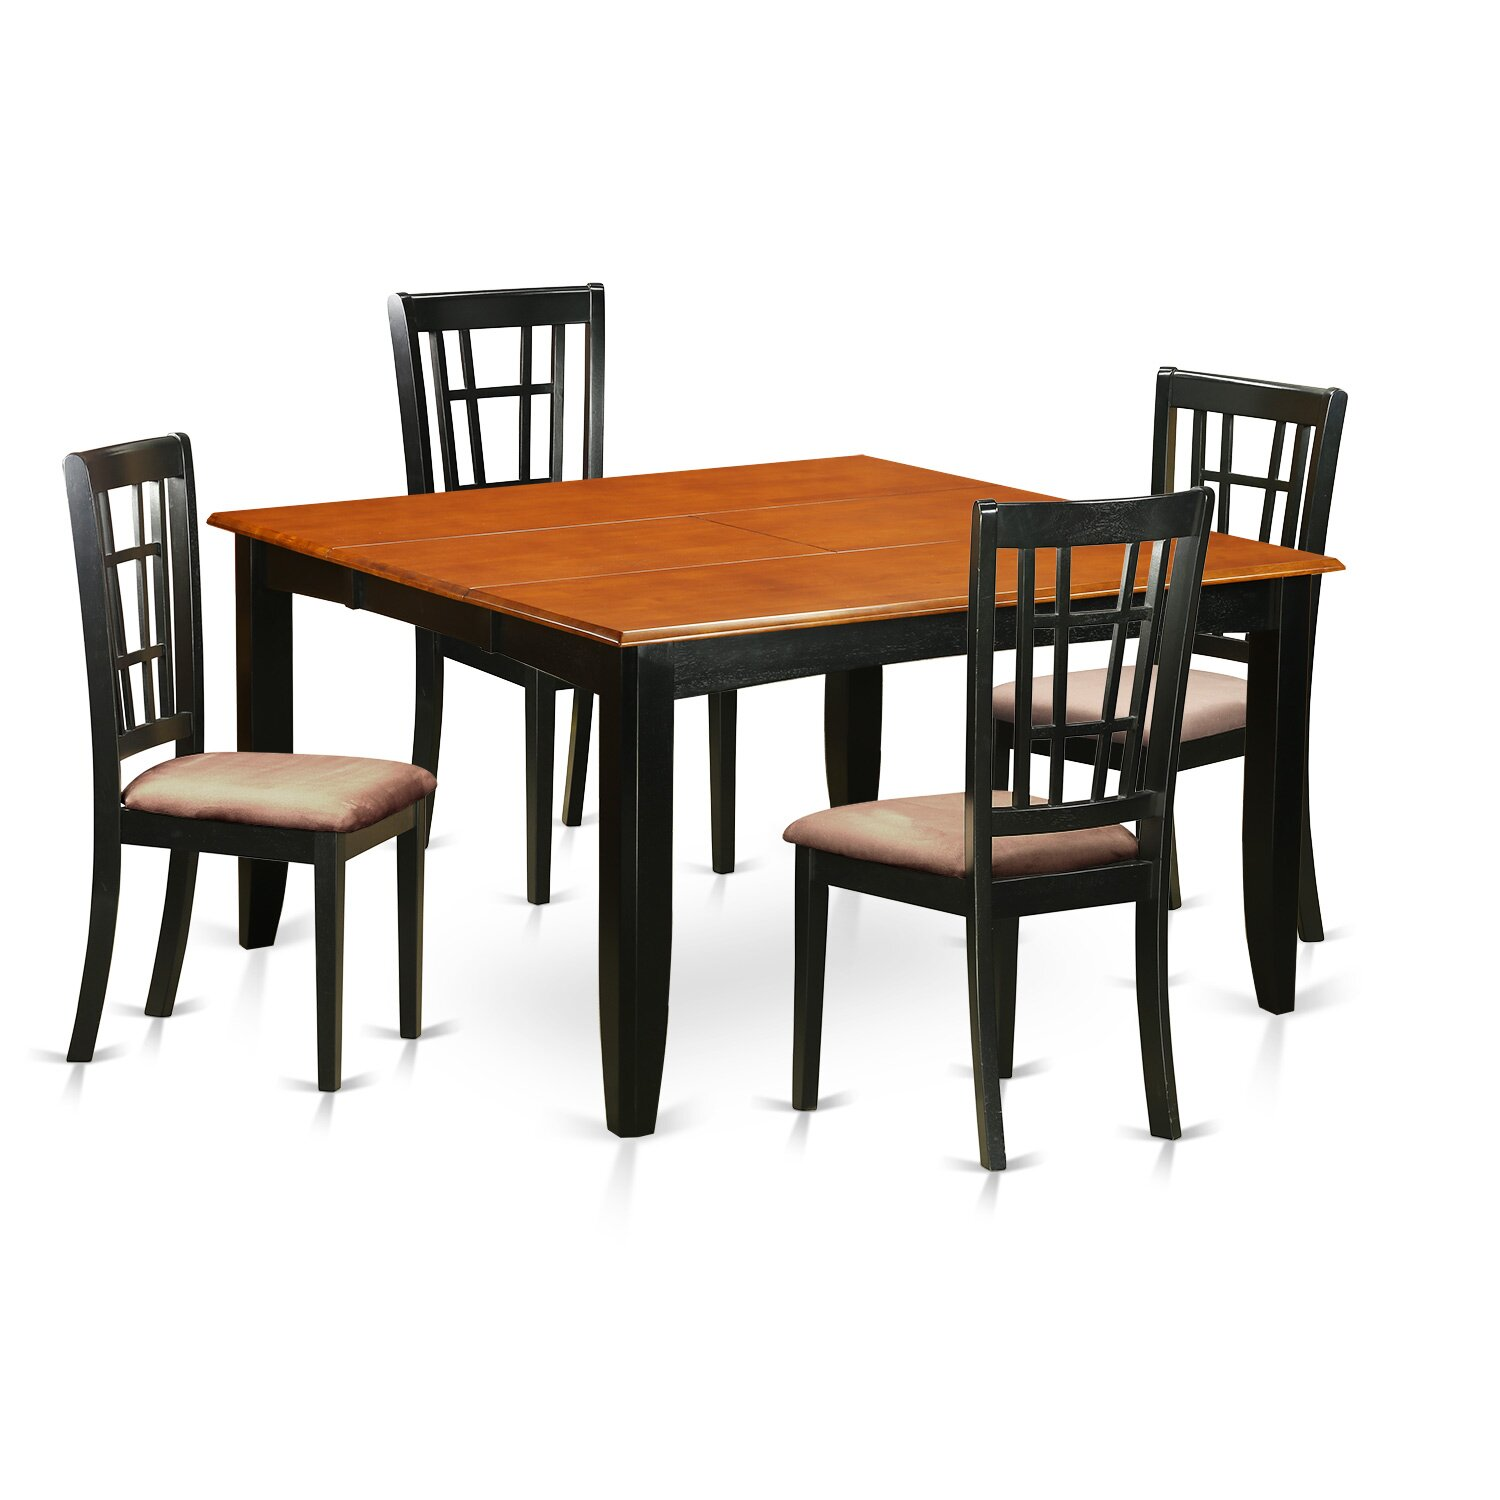 5 PC Dining Room Table Set Dining Table and 4 Solid Wood Dining Chairs PFNI5 BCH EWFR